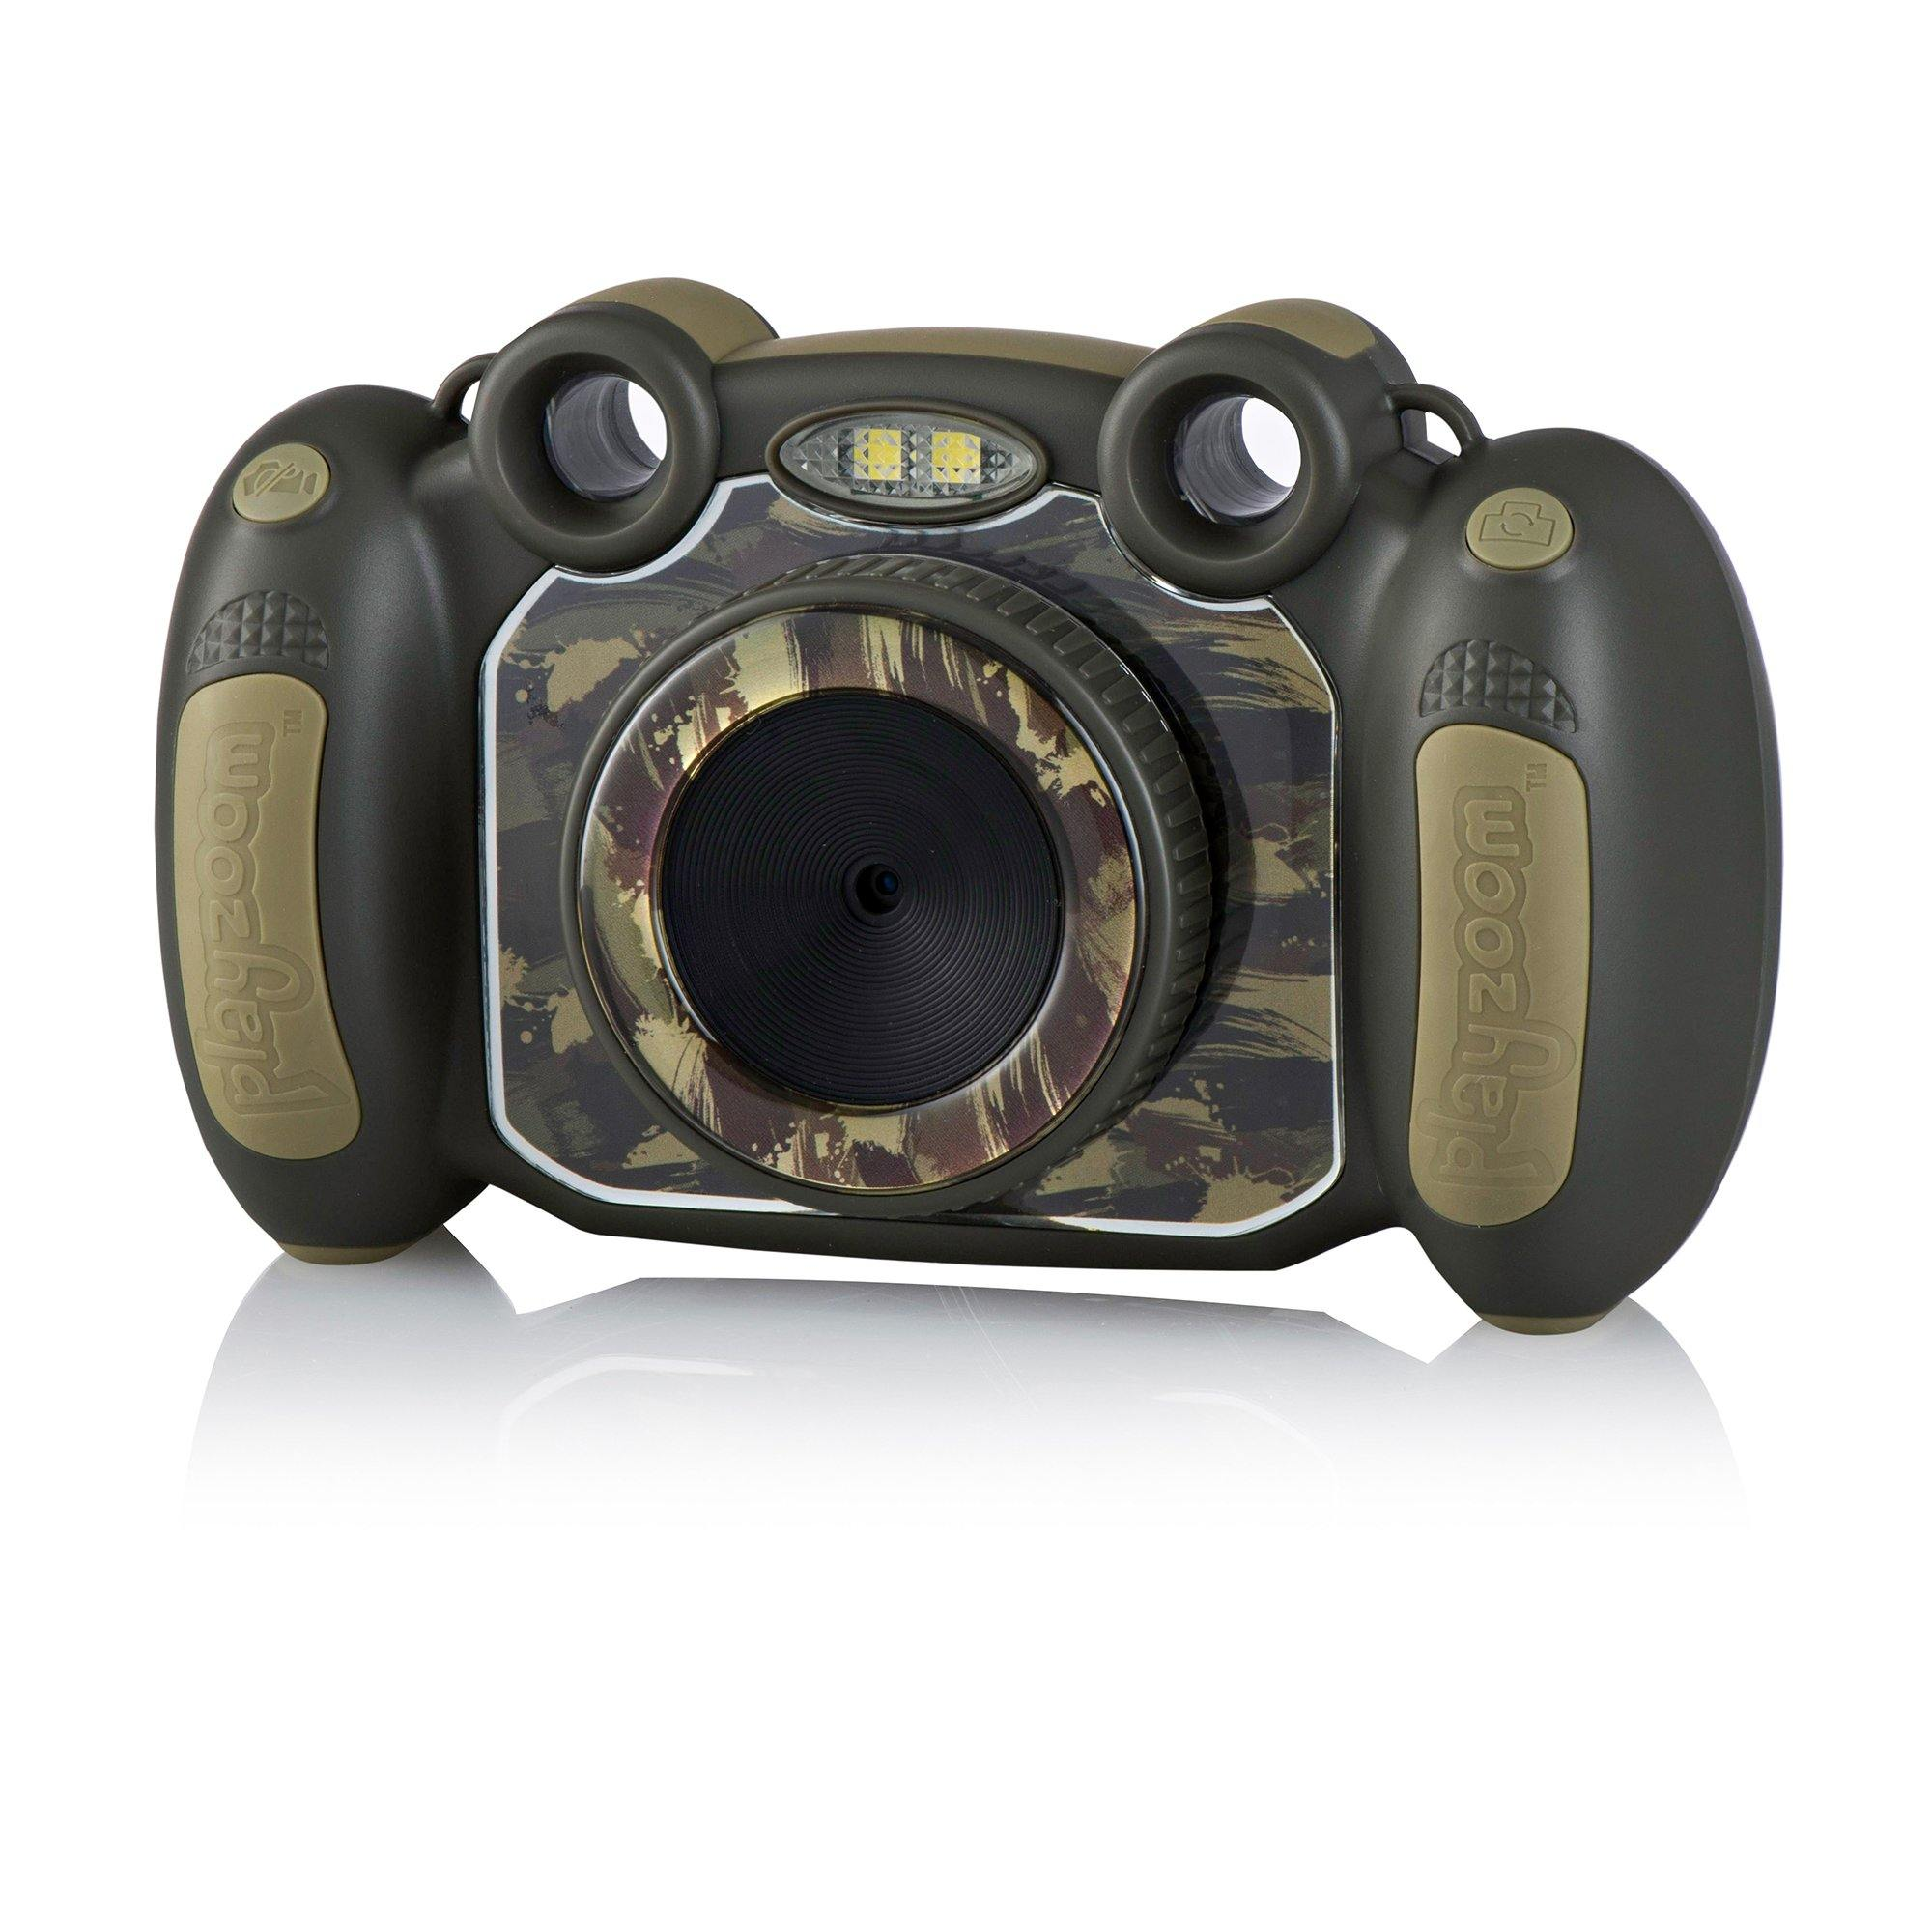 Playzoom Snapcam Duo, Green